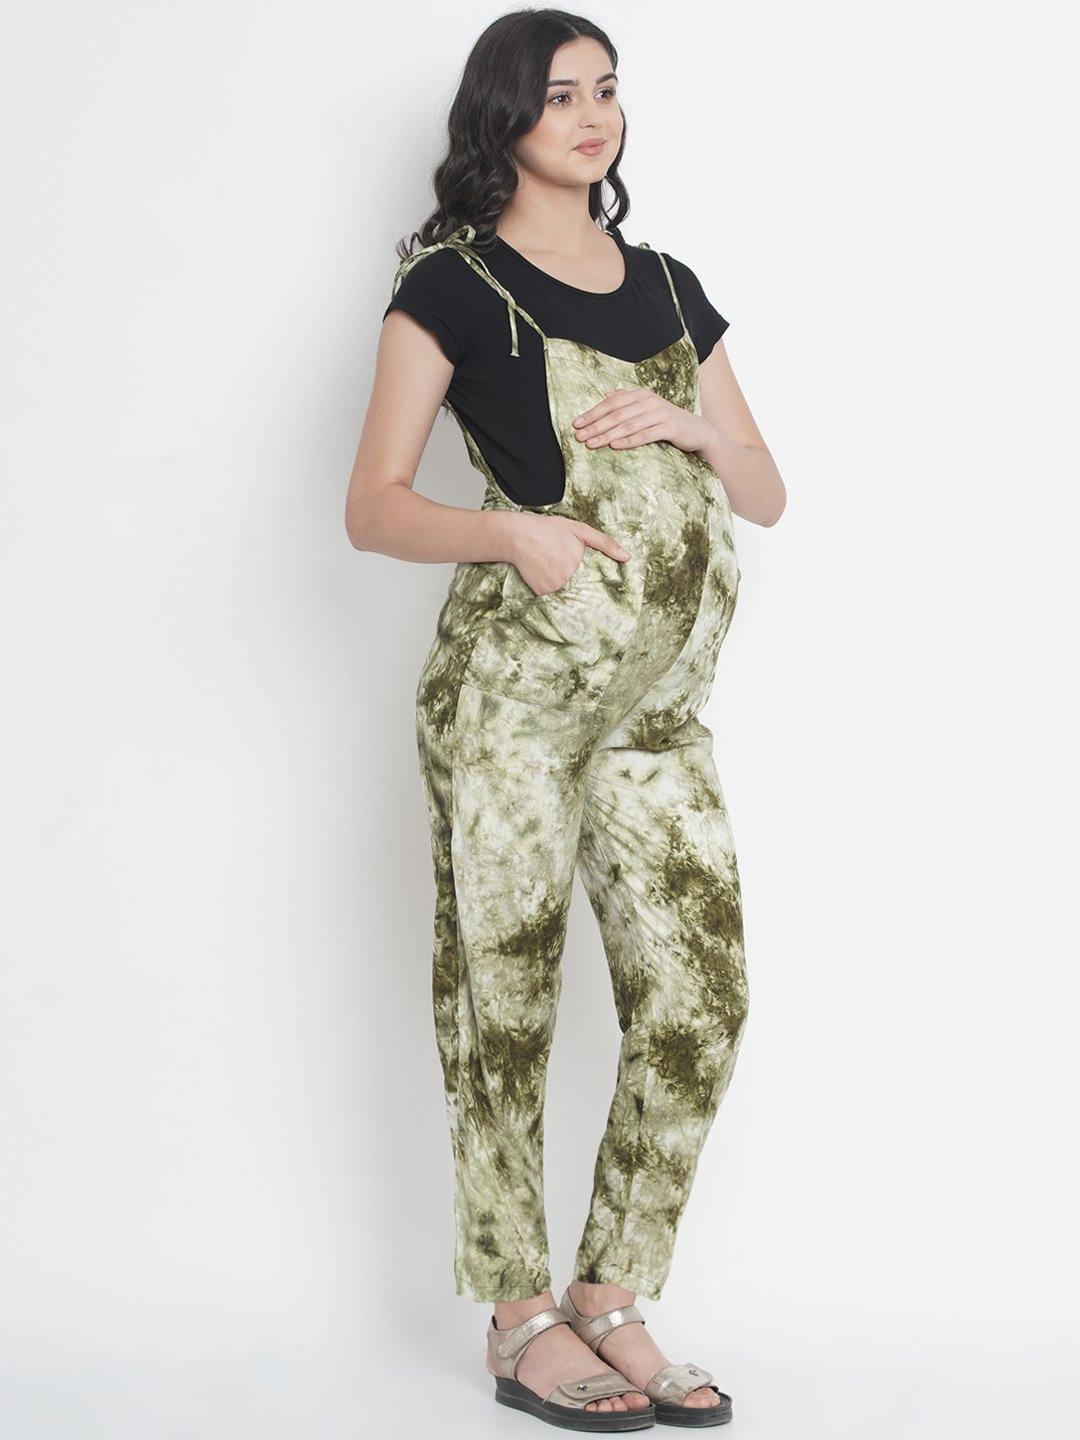 Mine4Nine - Dungaree - Twist of Lime Green Regular Maternity Dungaree w/ Tie & Dye Print, Made Of Rayon